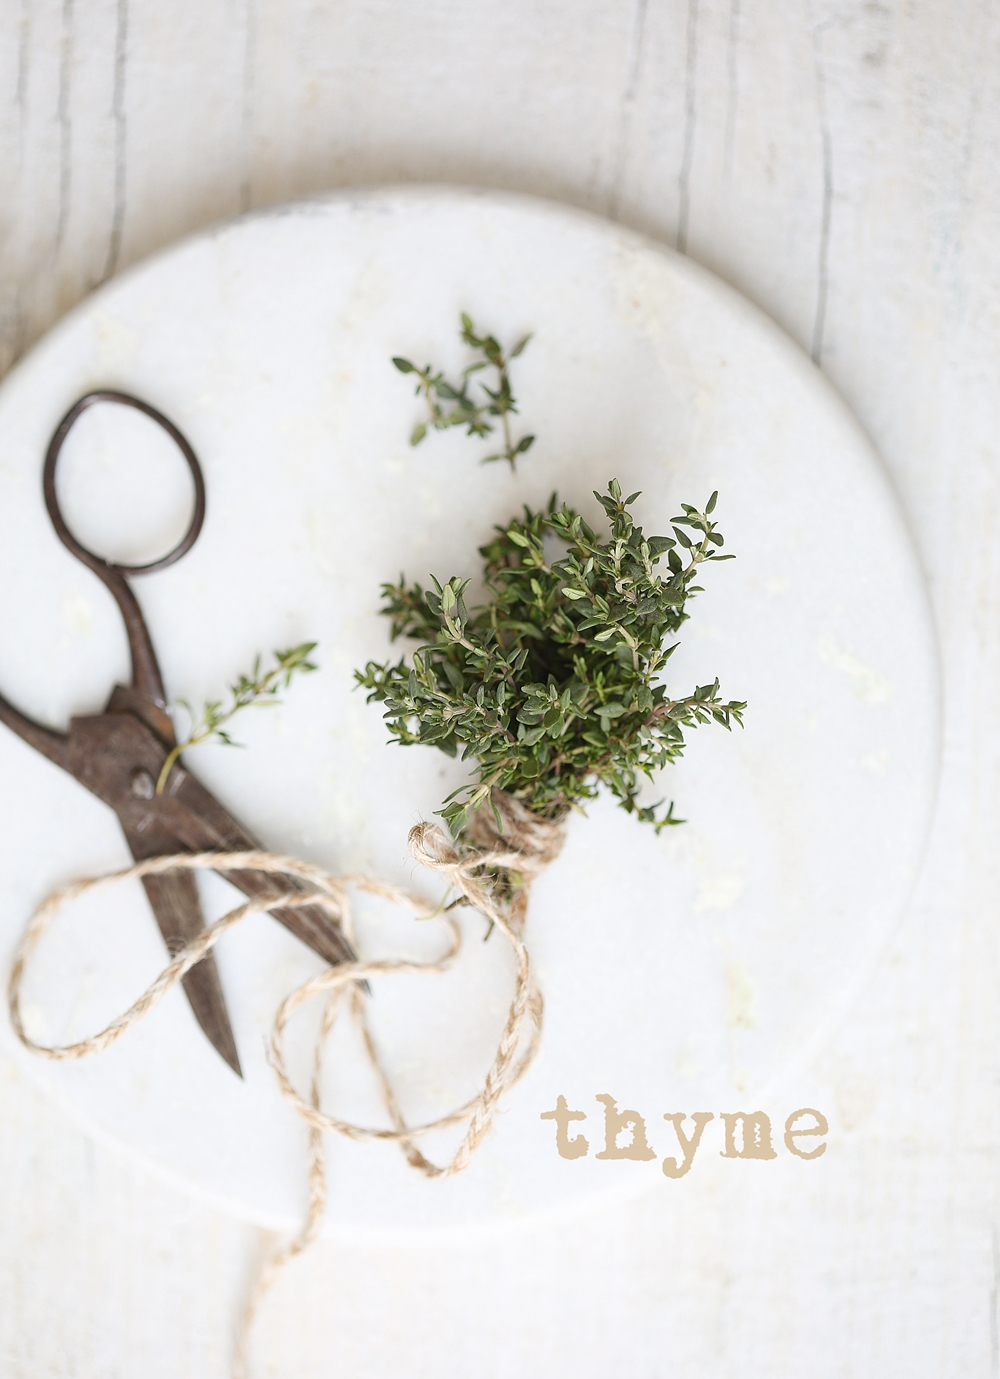 Thyme, food styling, food photography